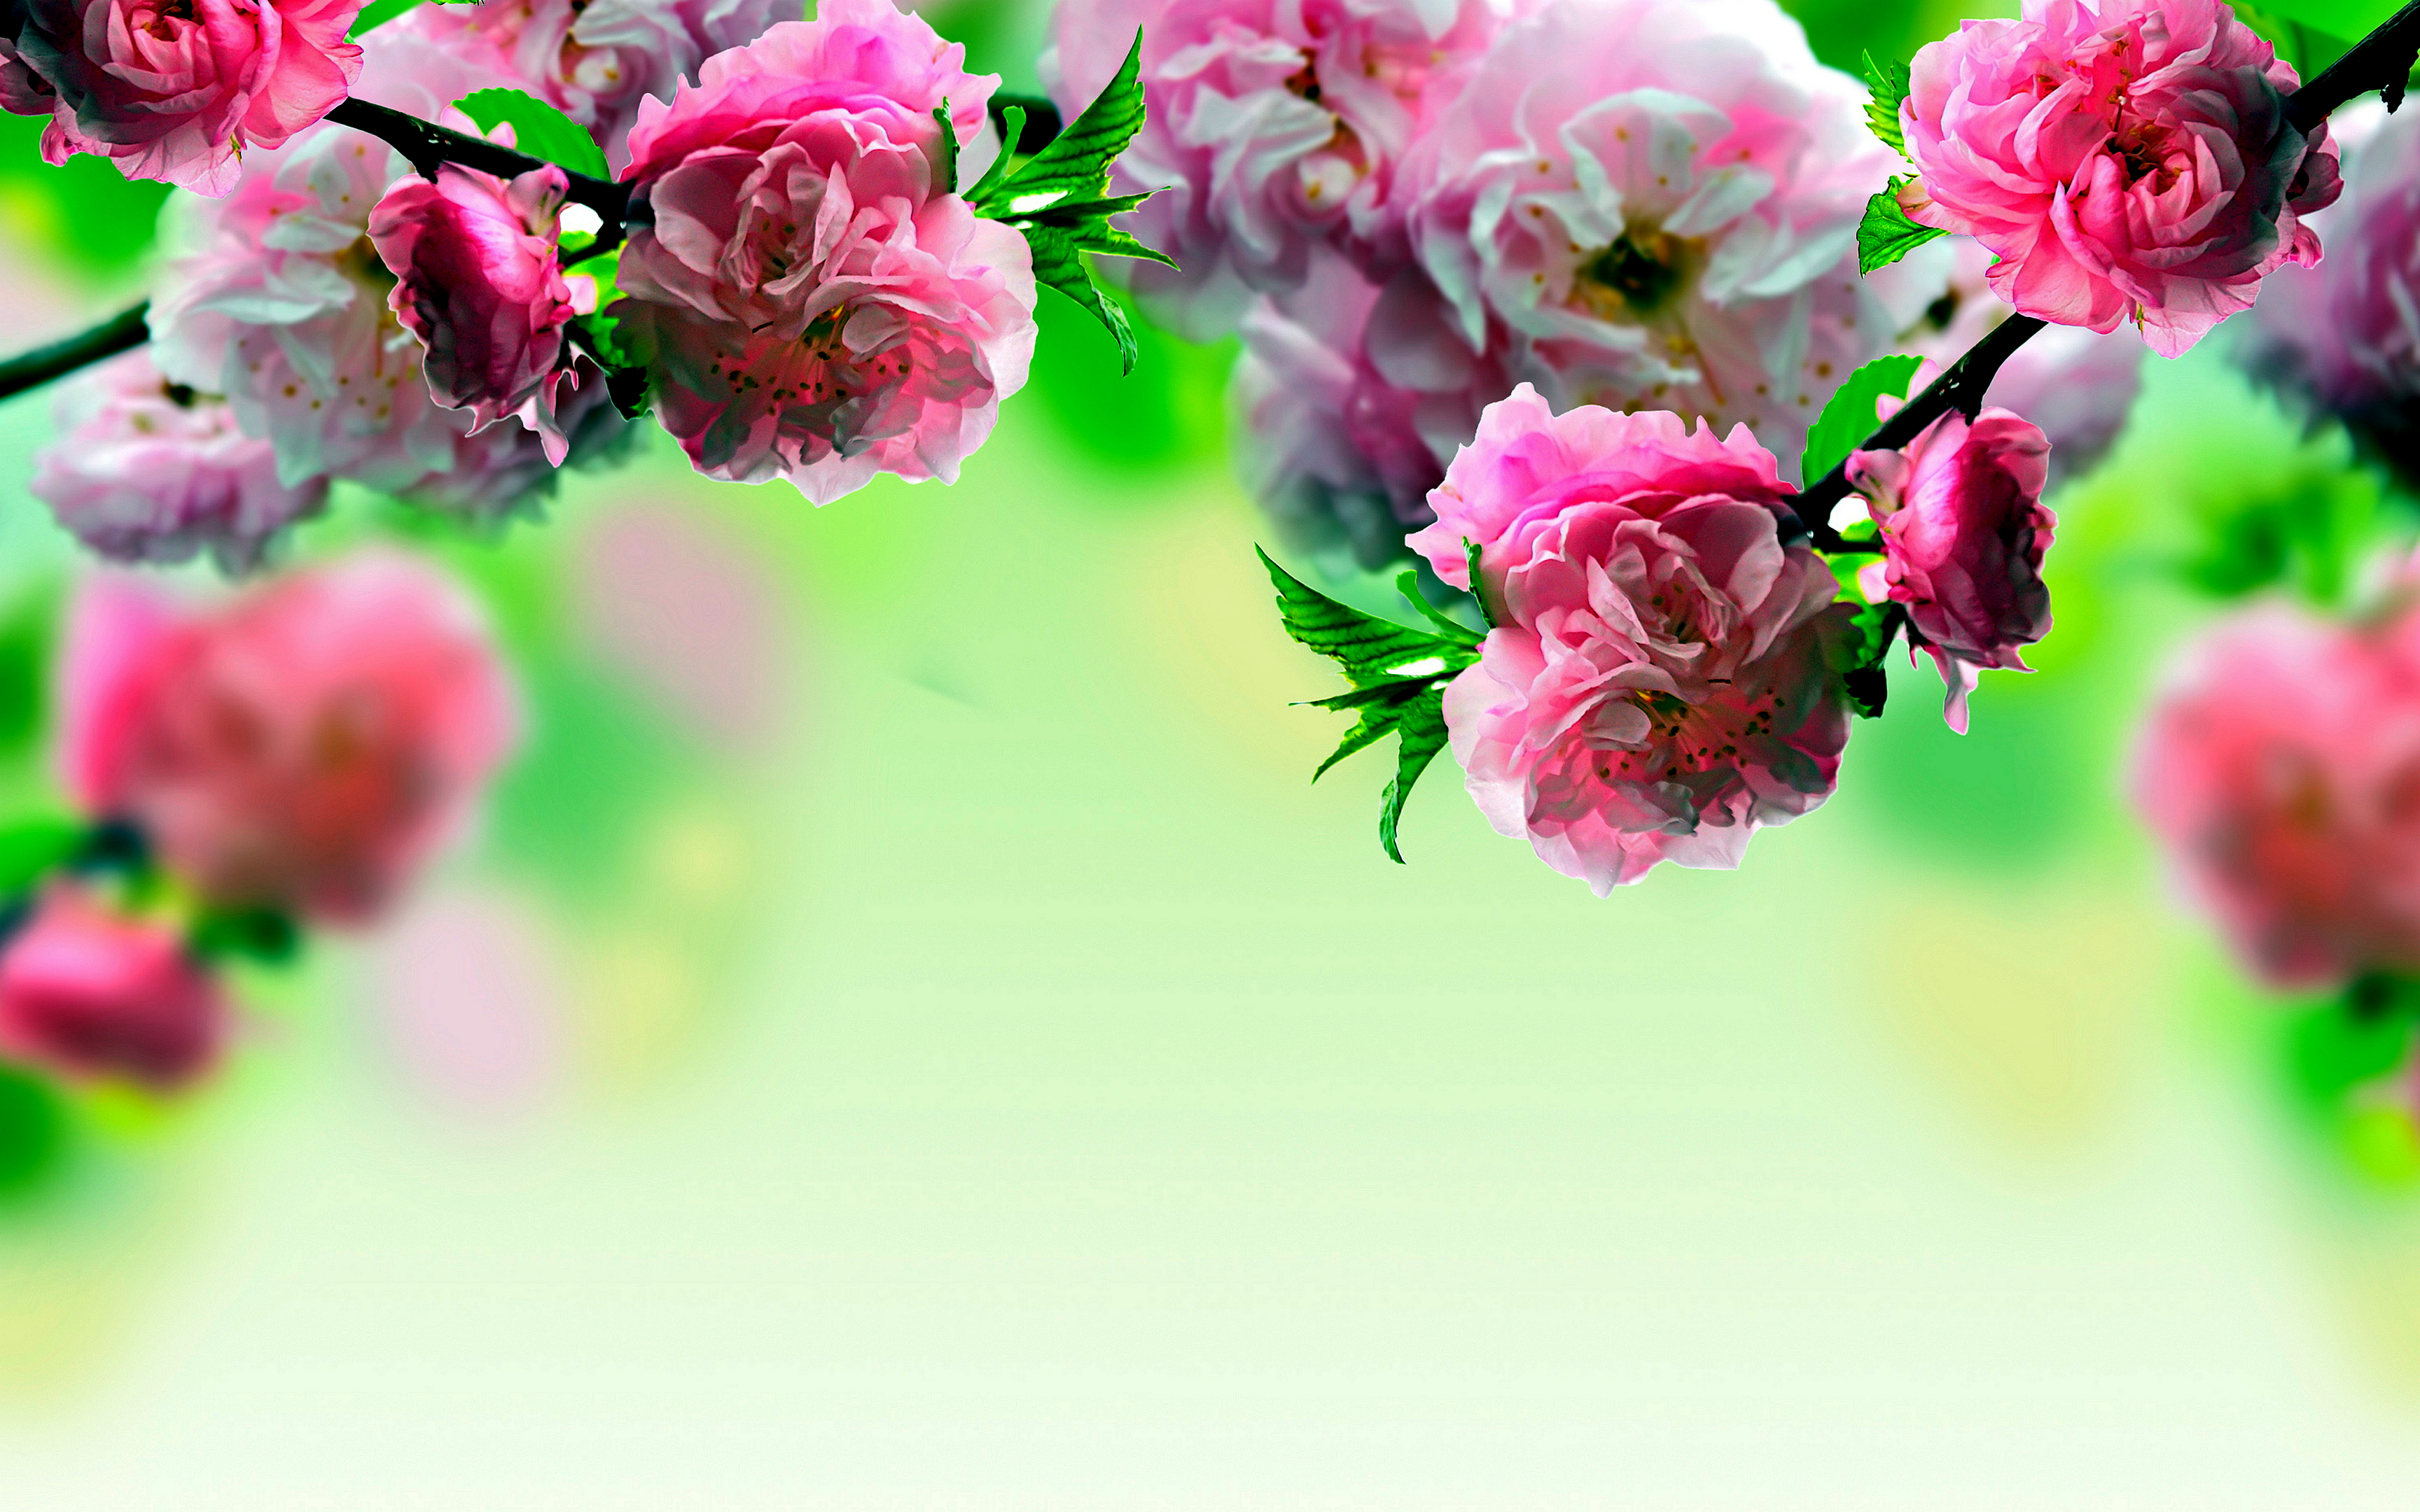 Spring flowers wallpapers high quality download free spring flowers desktop wallpaper1 mightylinksfo